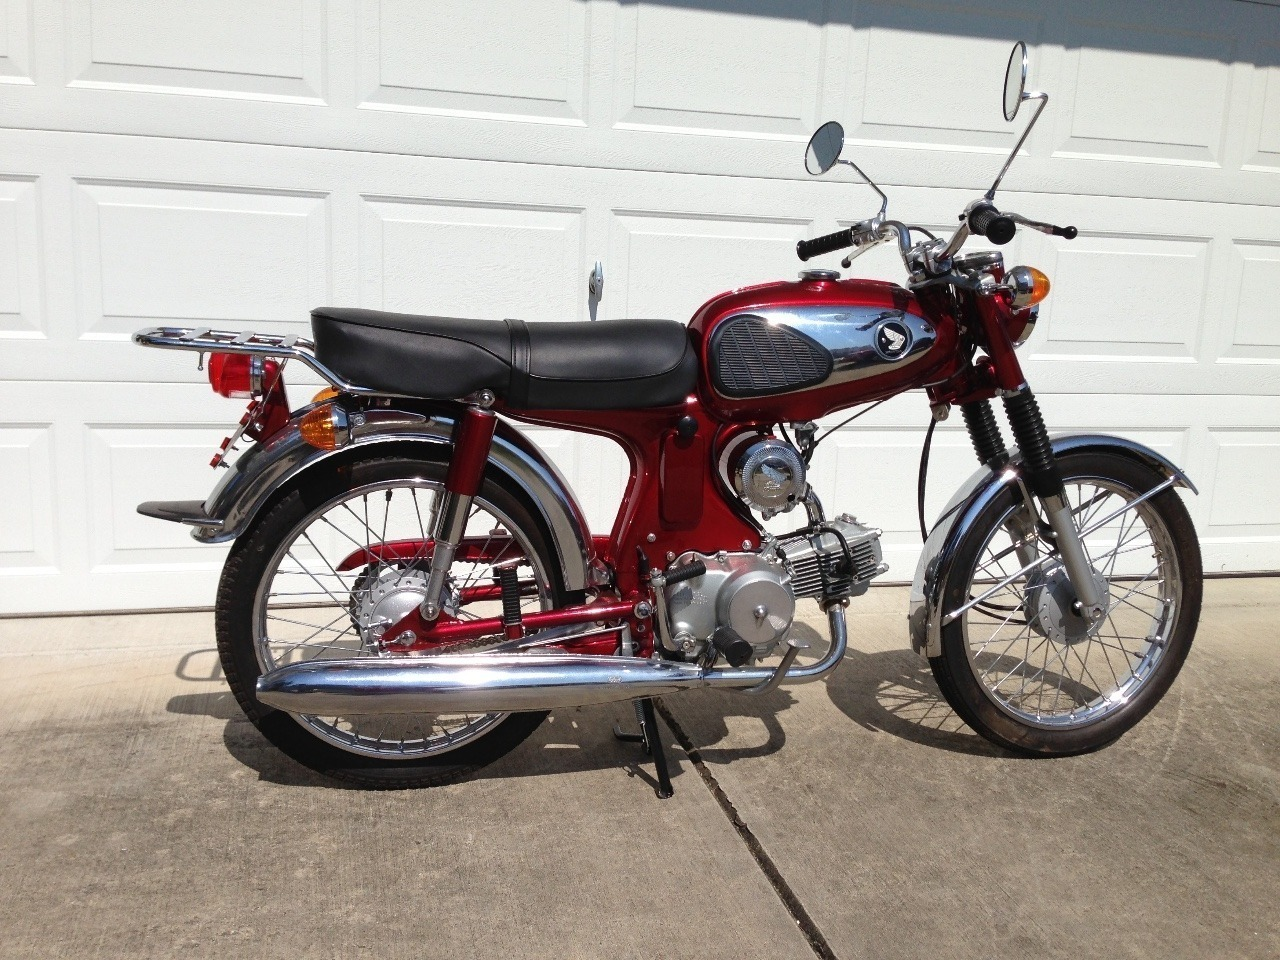 1969 honda s90 90 90 motorcycle from ocala fl today sale 2 500. Black Bedroom Furniture Sets. Home Design Ideas